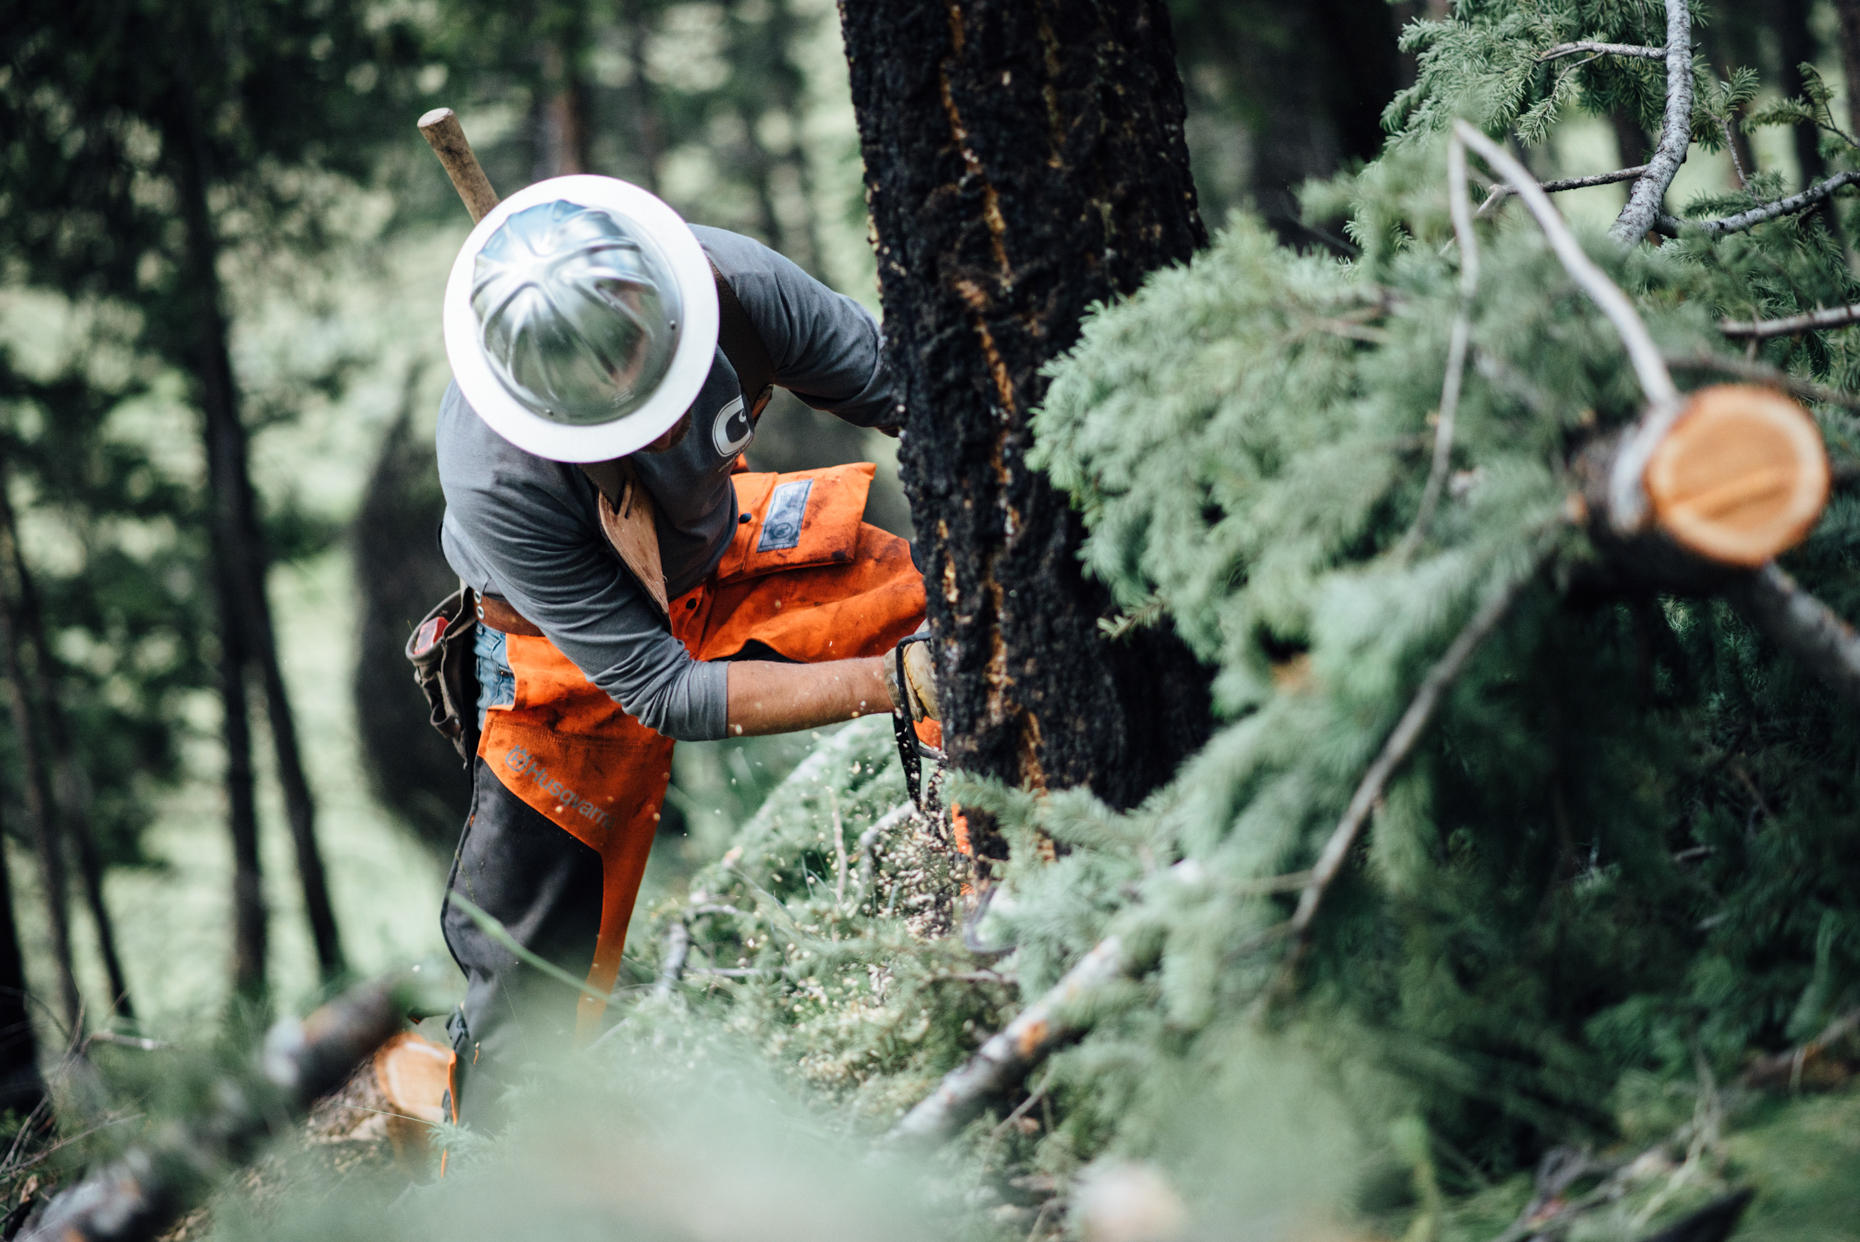 Logger using Stihl chainsaw in Montana. Isaac Miller Photography  | Agriculture & Industry Photographer  |  Commercial & Editorial photography  |   Missoula + San Antonio